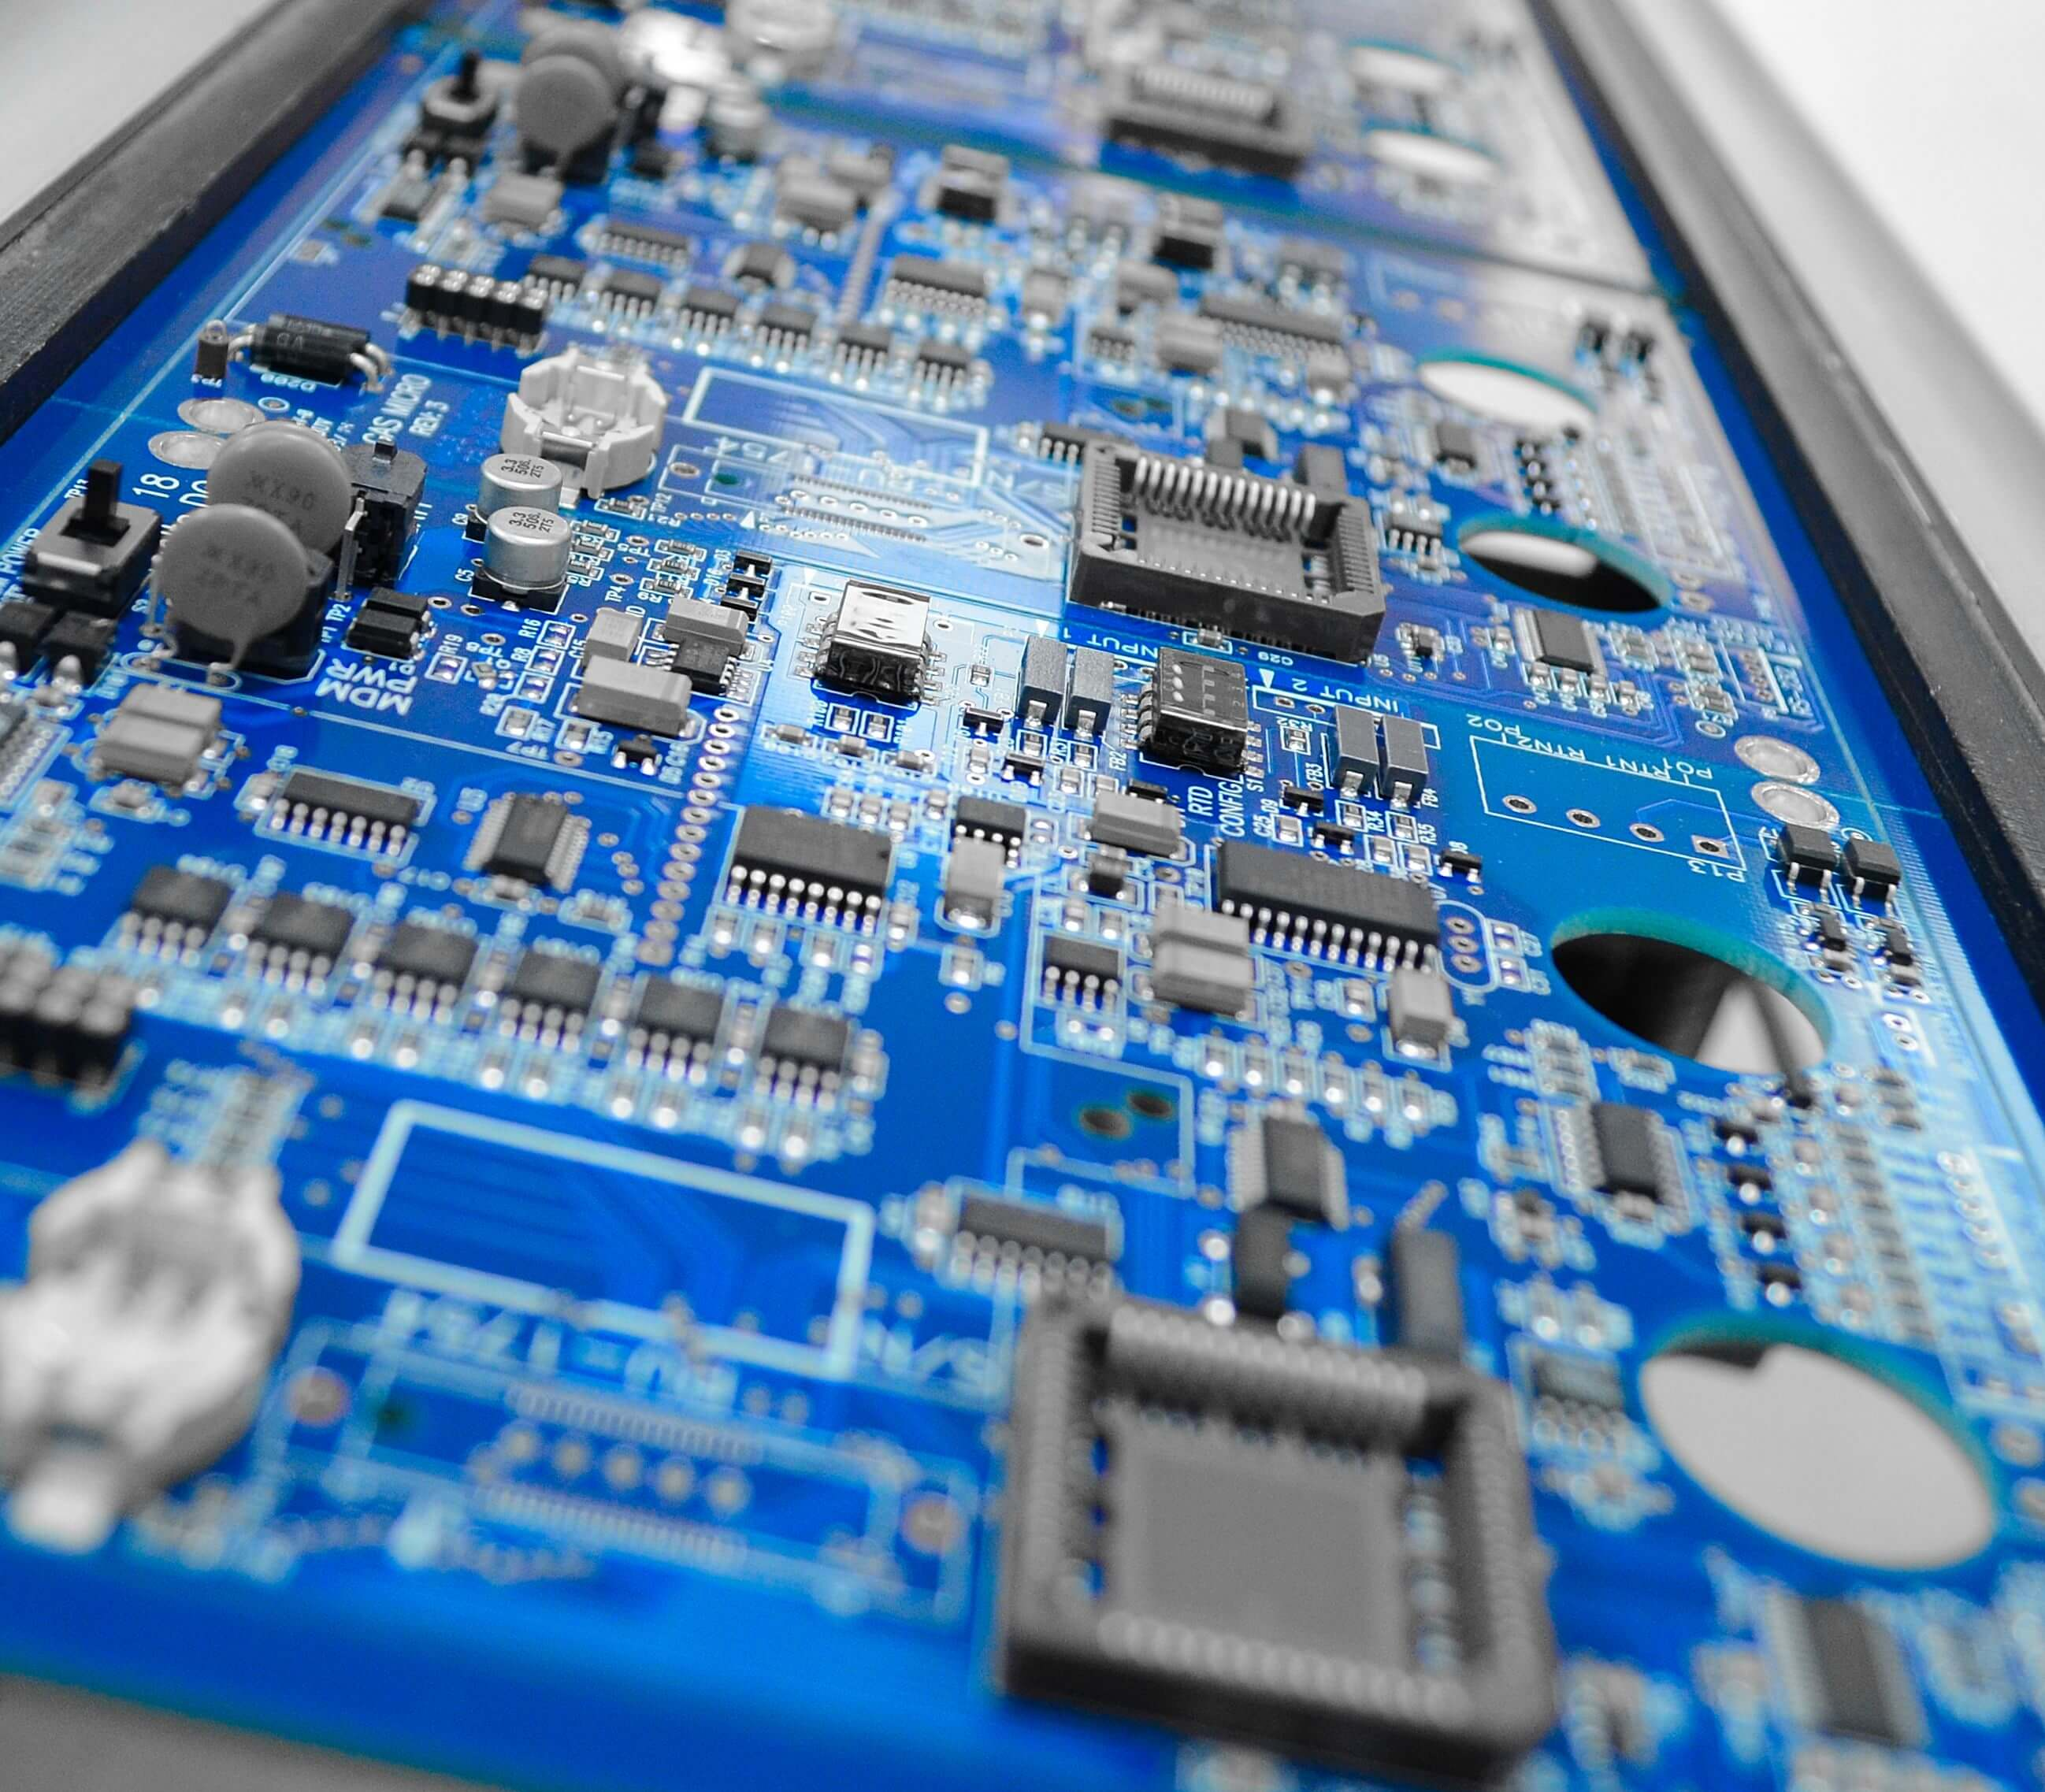 Ims Innovative Manufacturing Source Inc Assembly For Industrial Control One Stop Printed Circuit Board Volatility Management